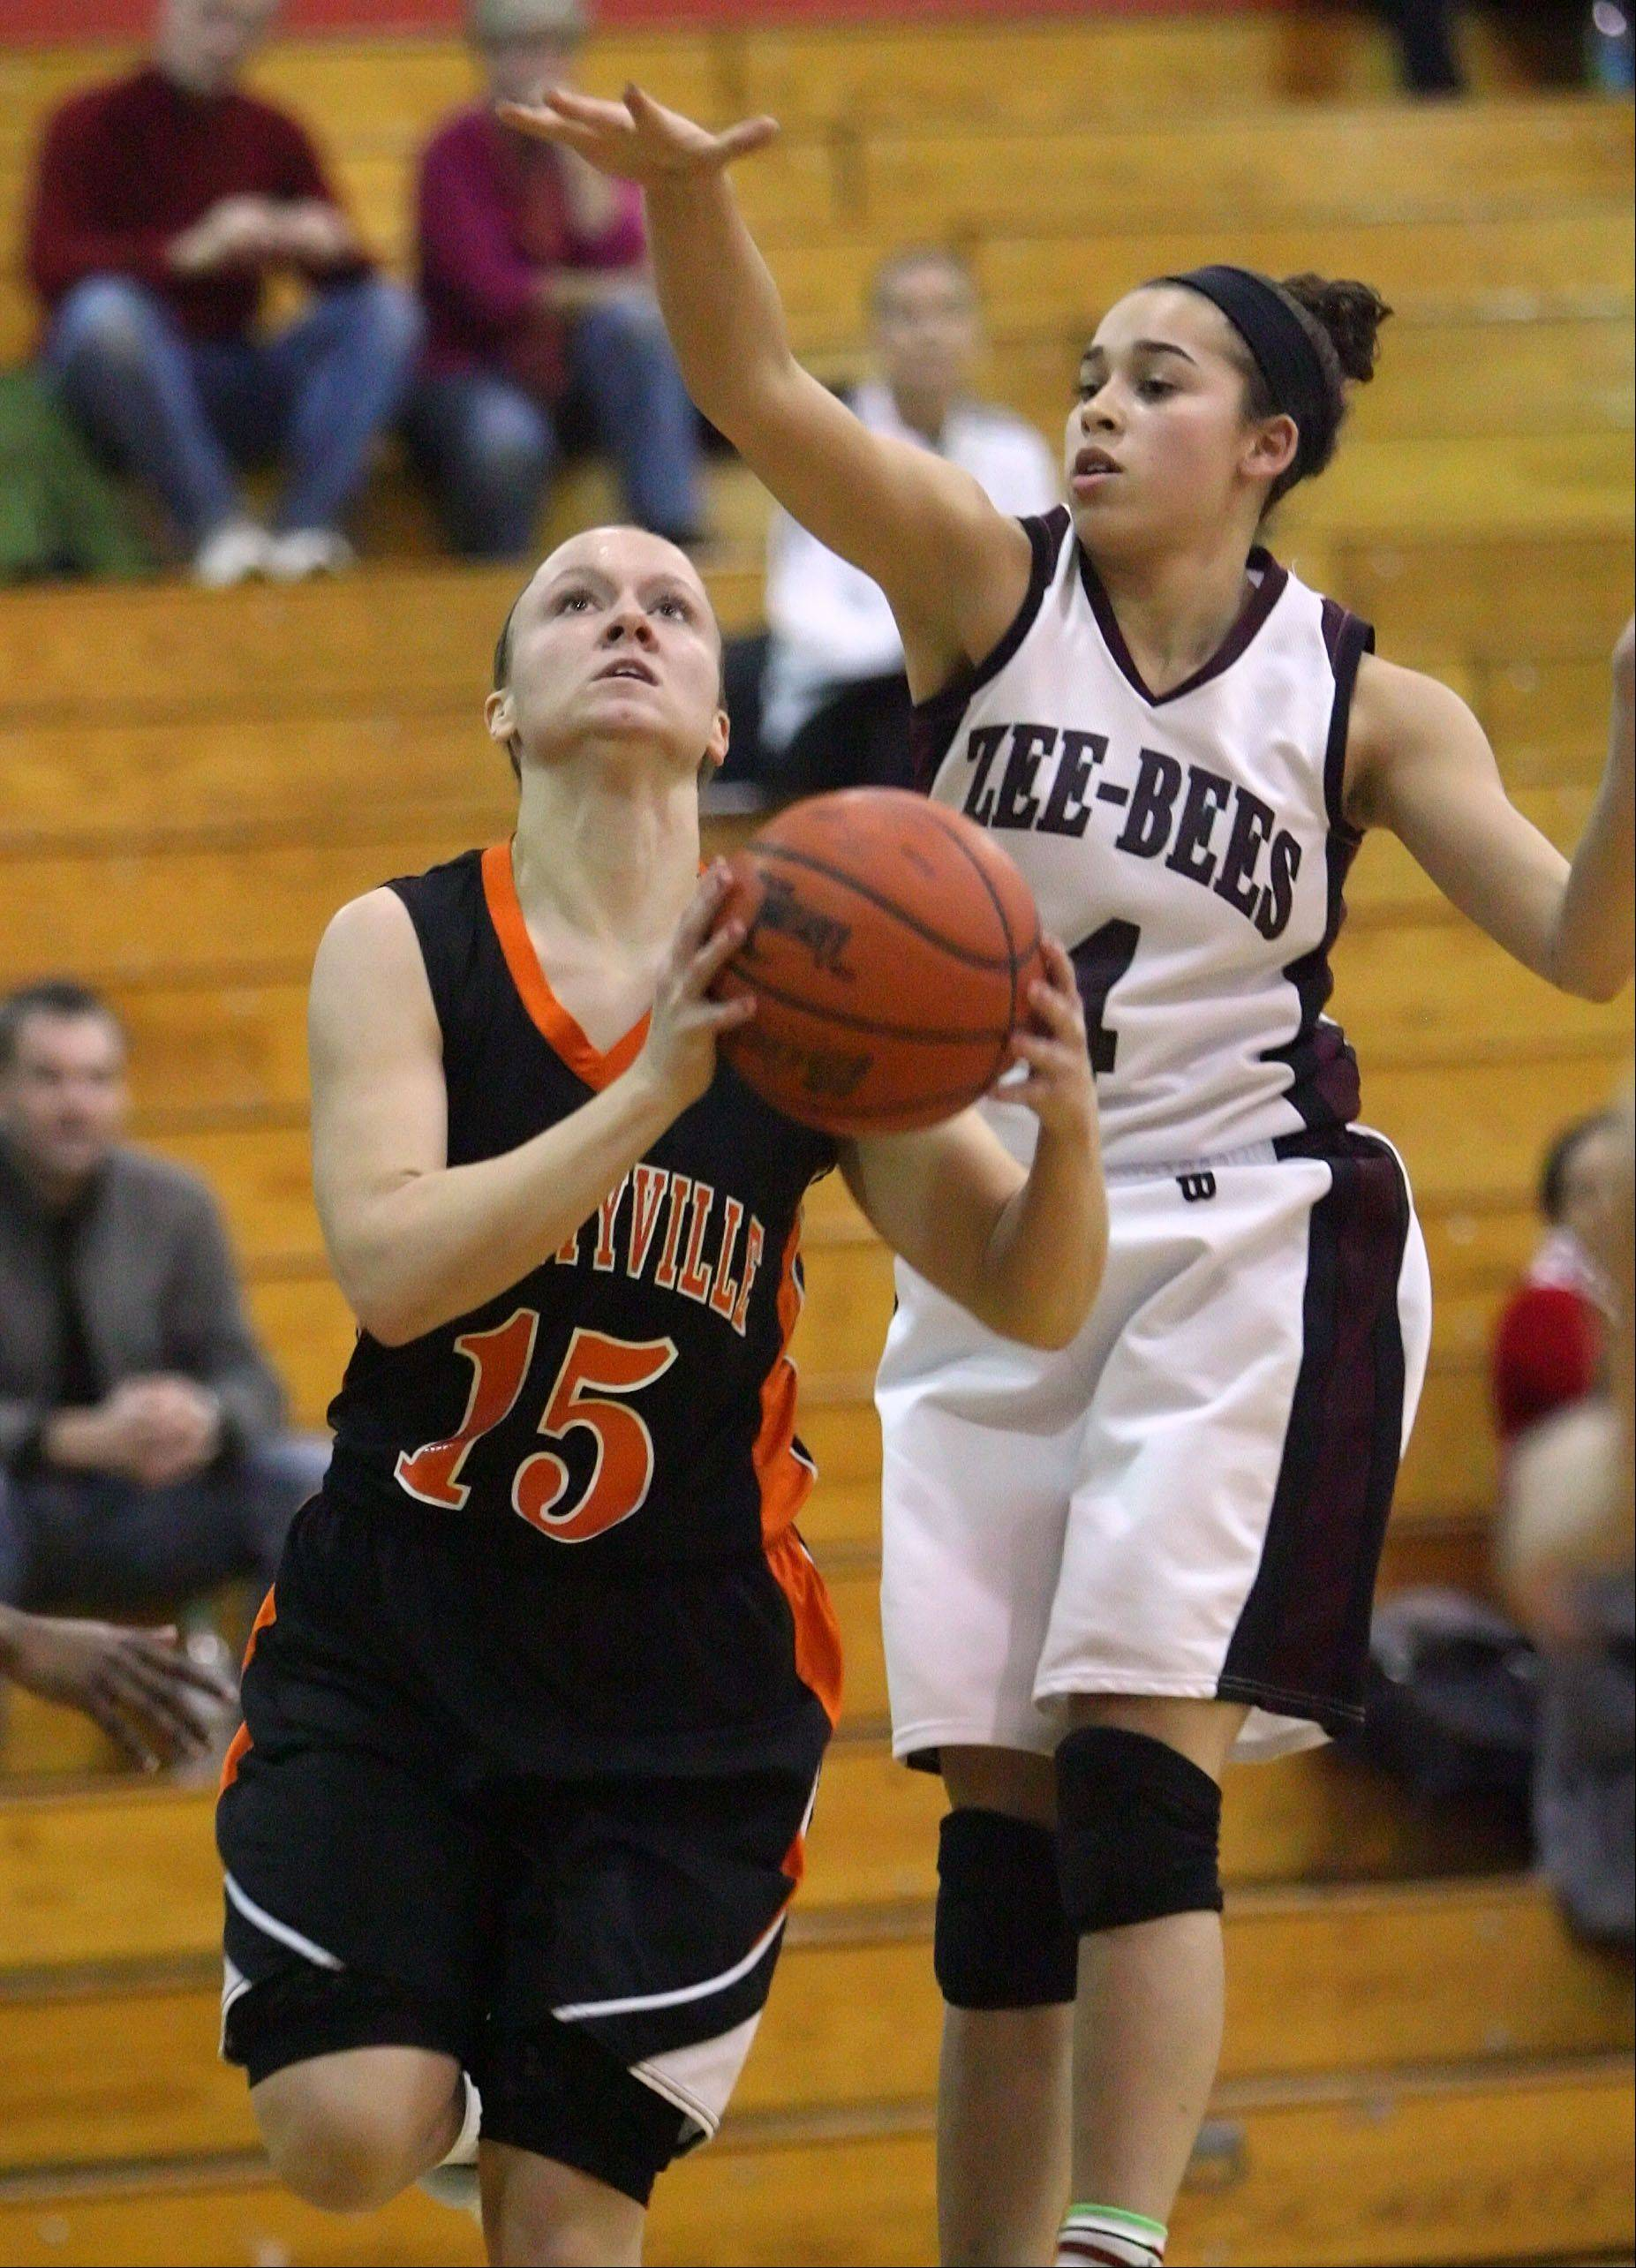 Libertyville's Alex Haley, left, drives on Zion-Benton's Morgan Franklin.